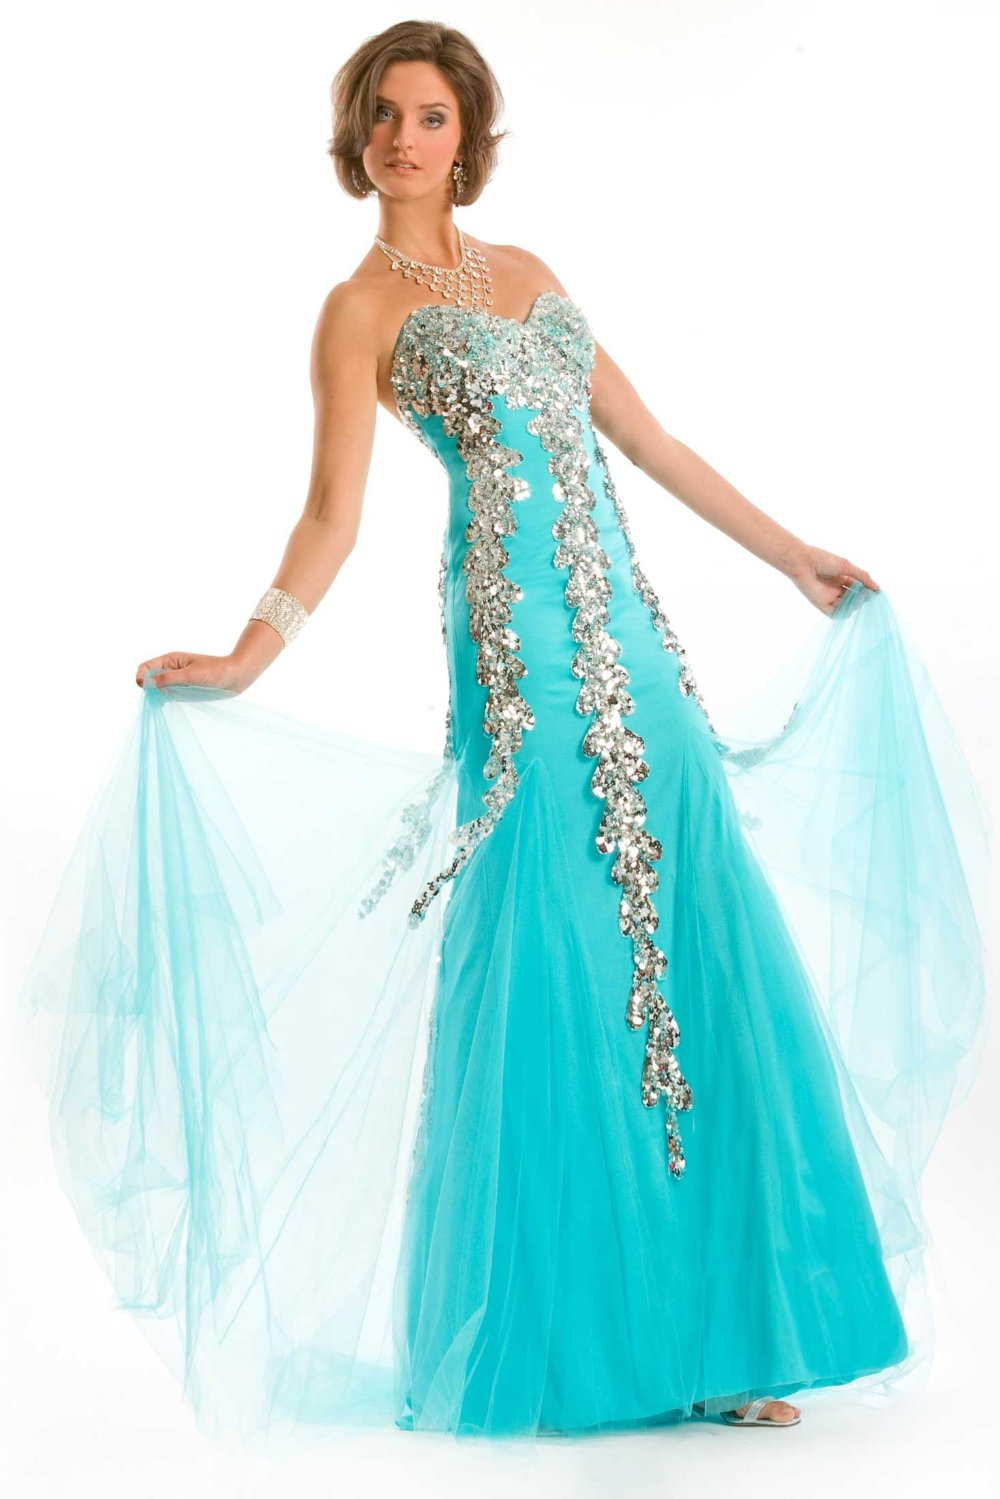 Funky Uk Prom Dress Websites Image - All Wedding Dresses ...